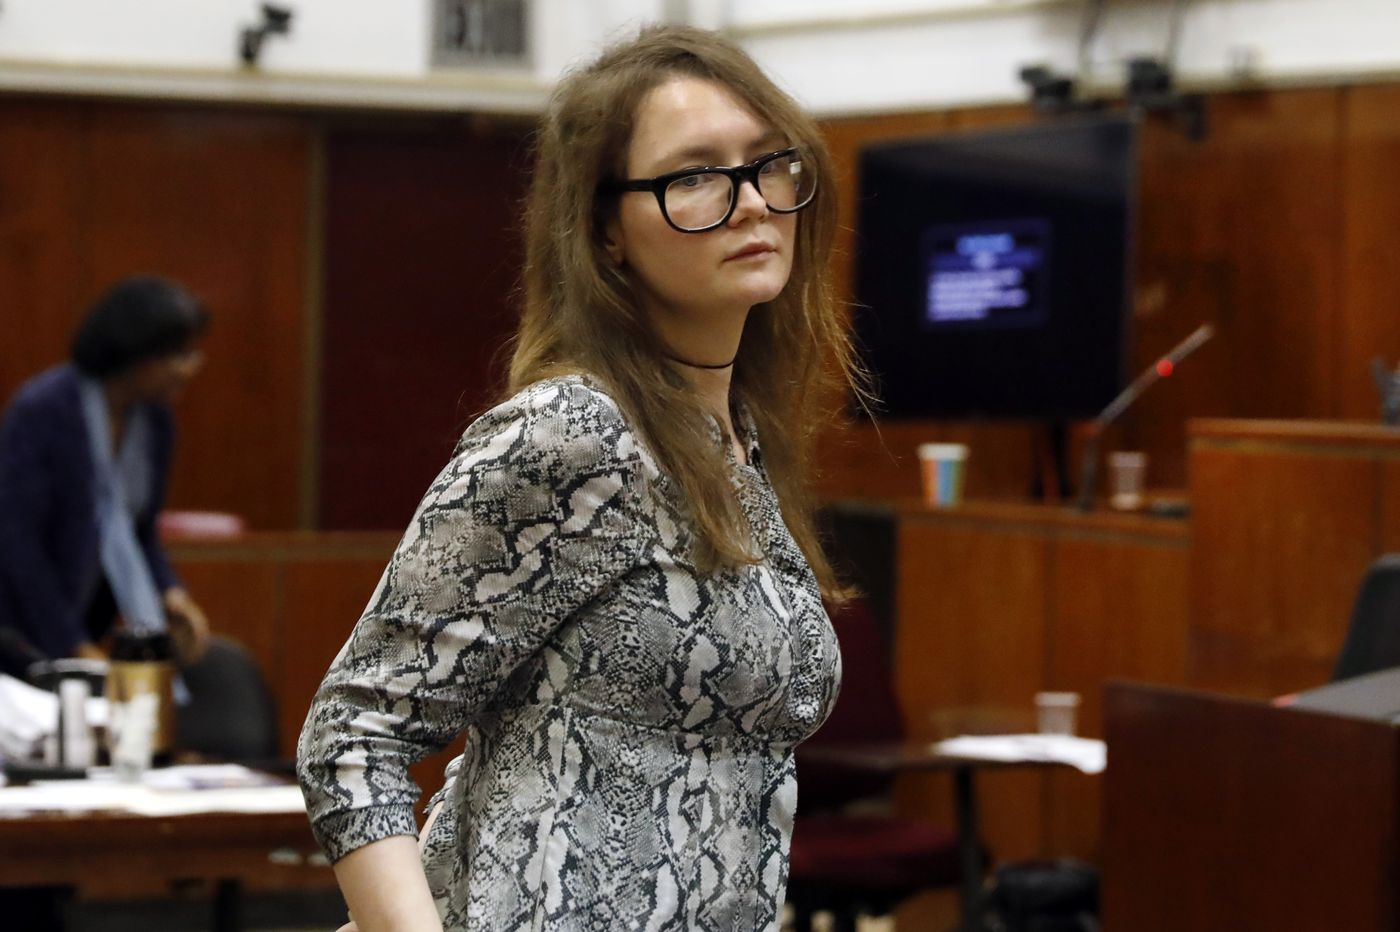 Attorney: Fake German heiress had 'ambitious' business plans